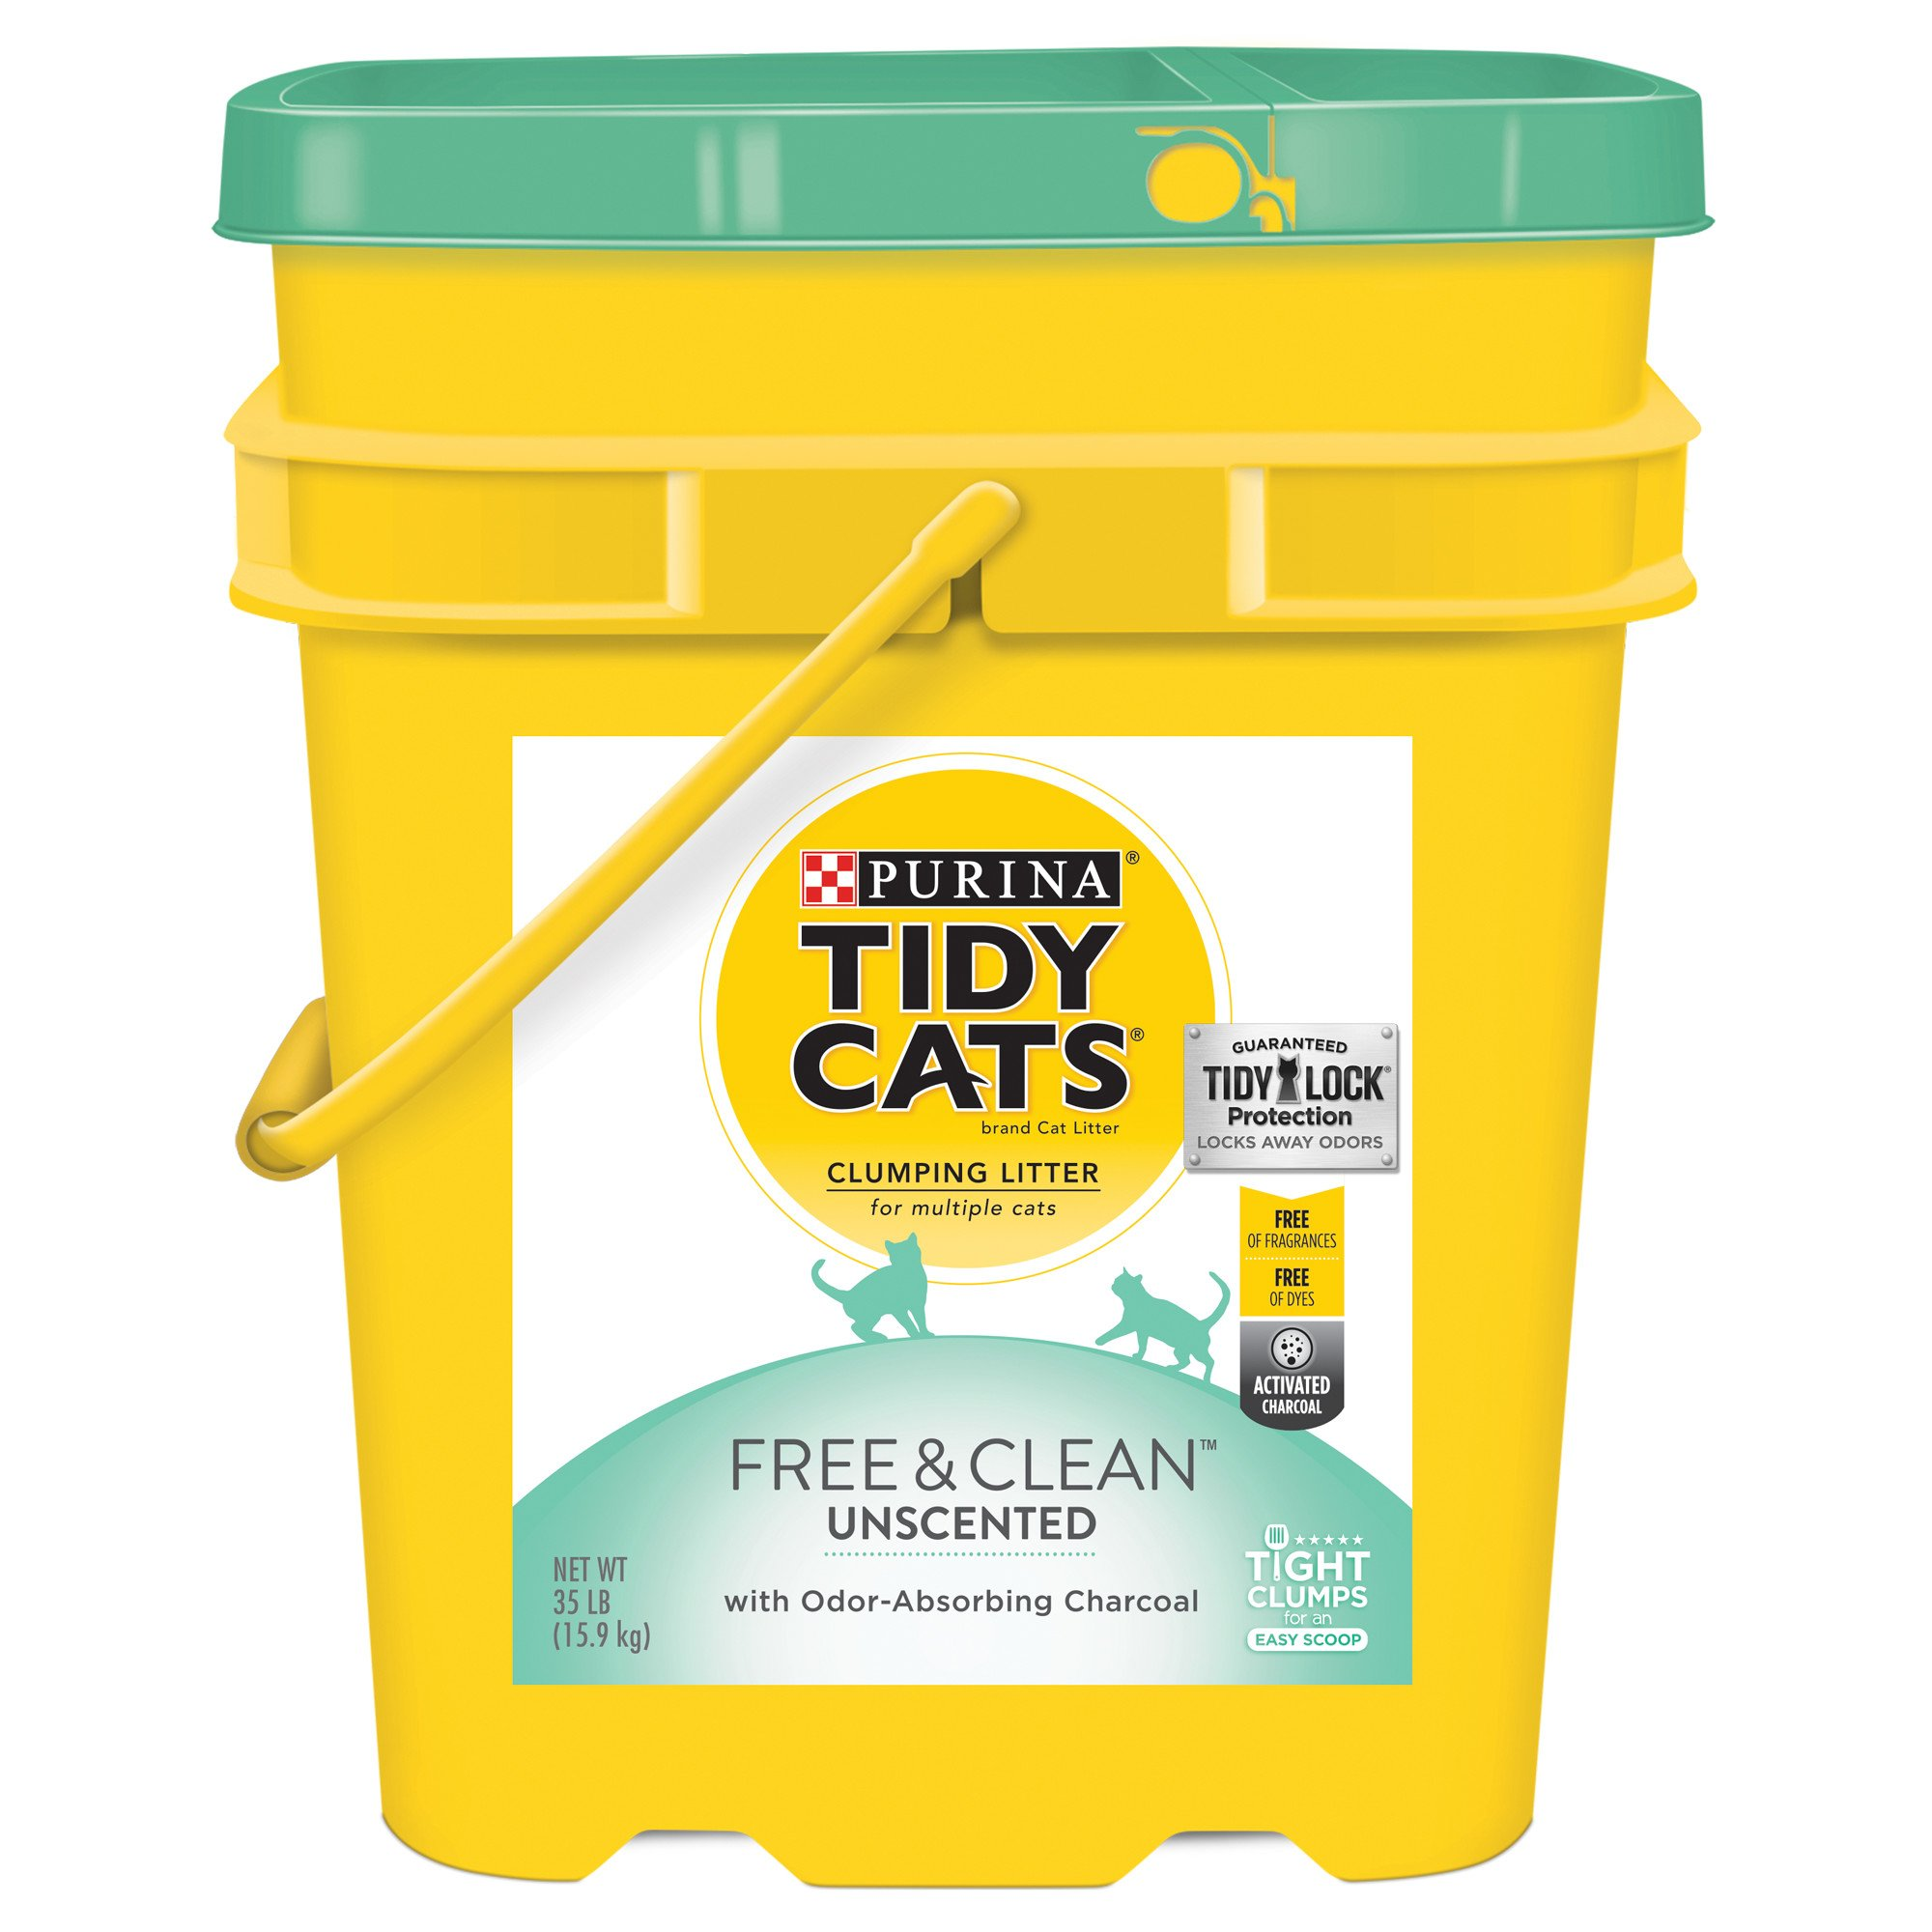 tidy cat litter purina tidy cats free amp clean with tidylock protection 10647